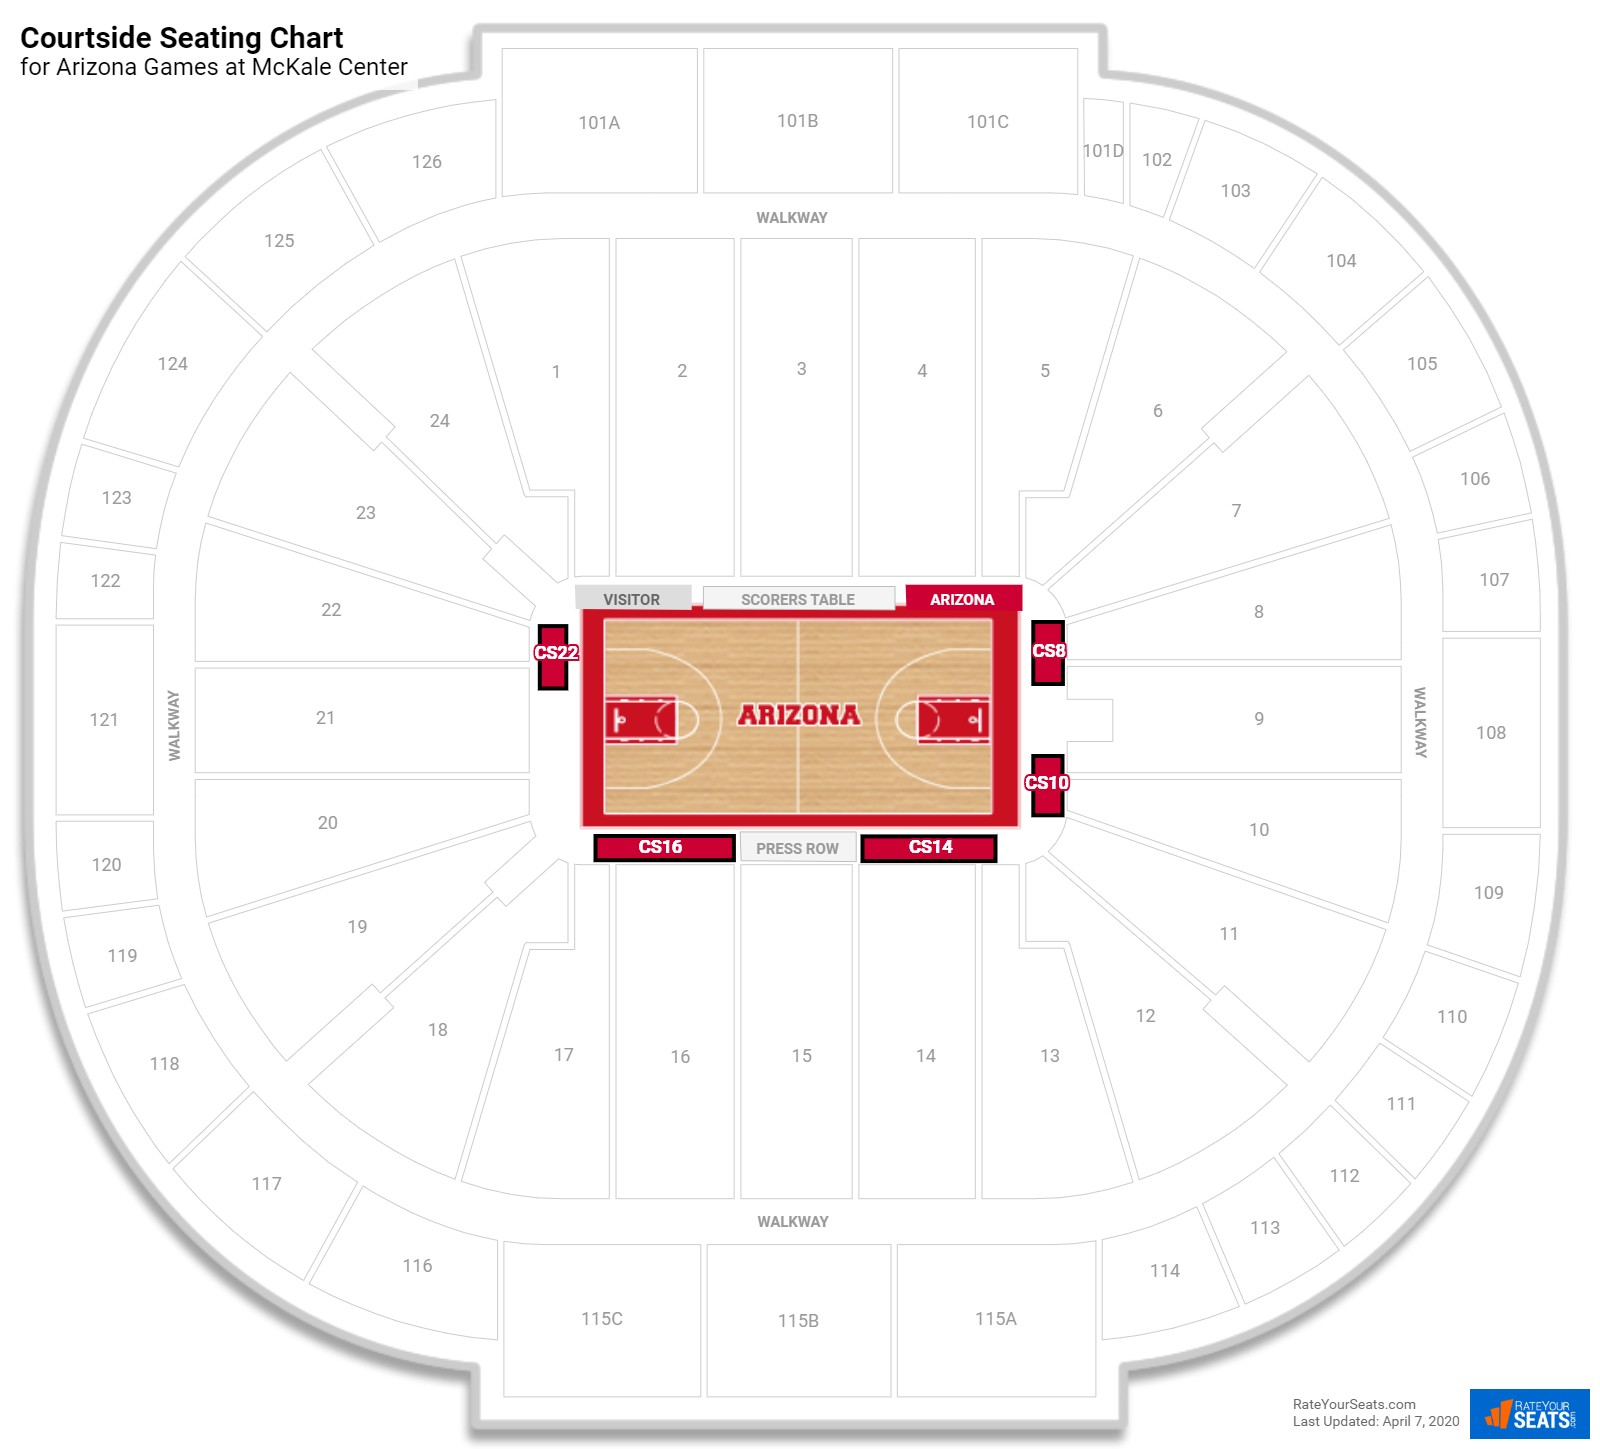 McKale Center Courtside seating chart